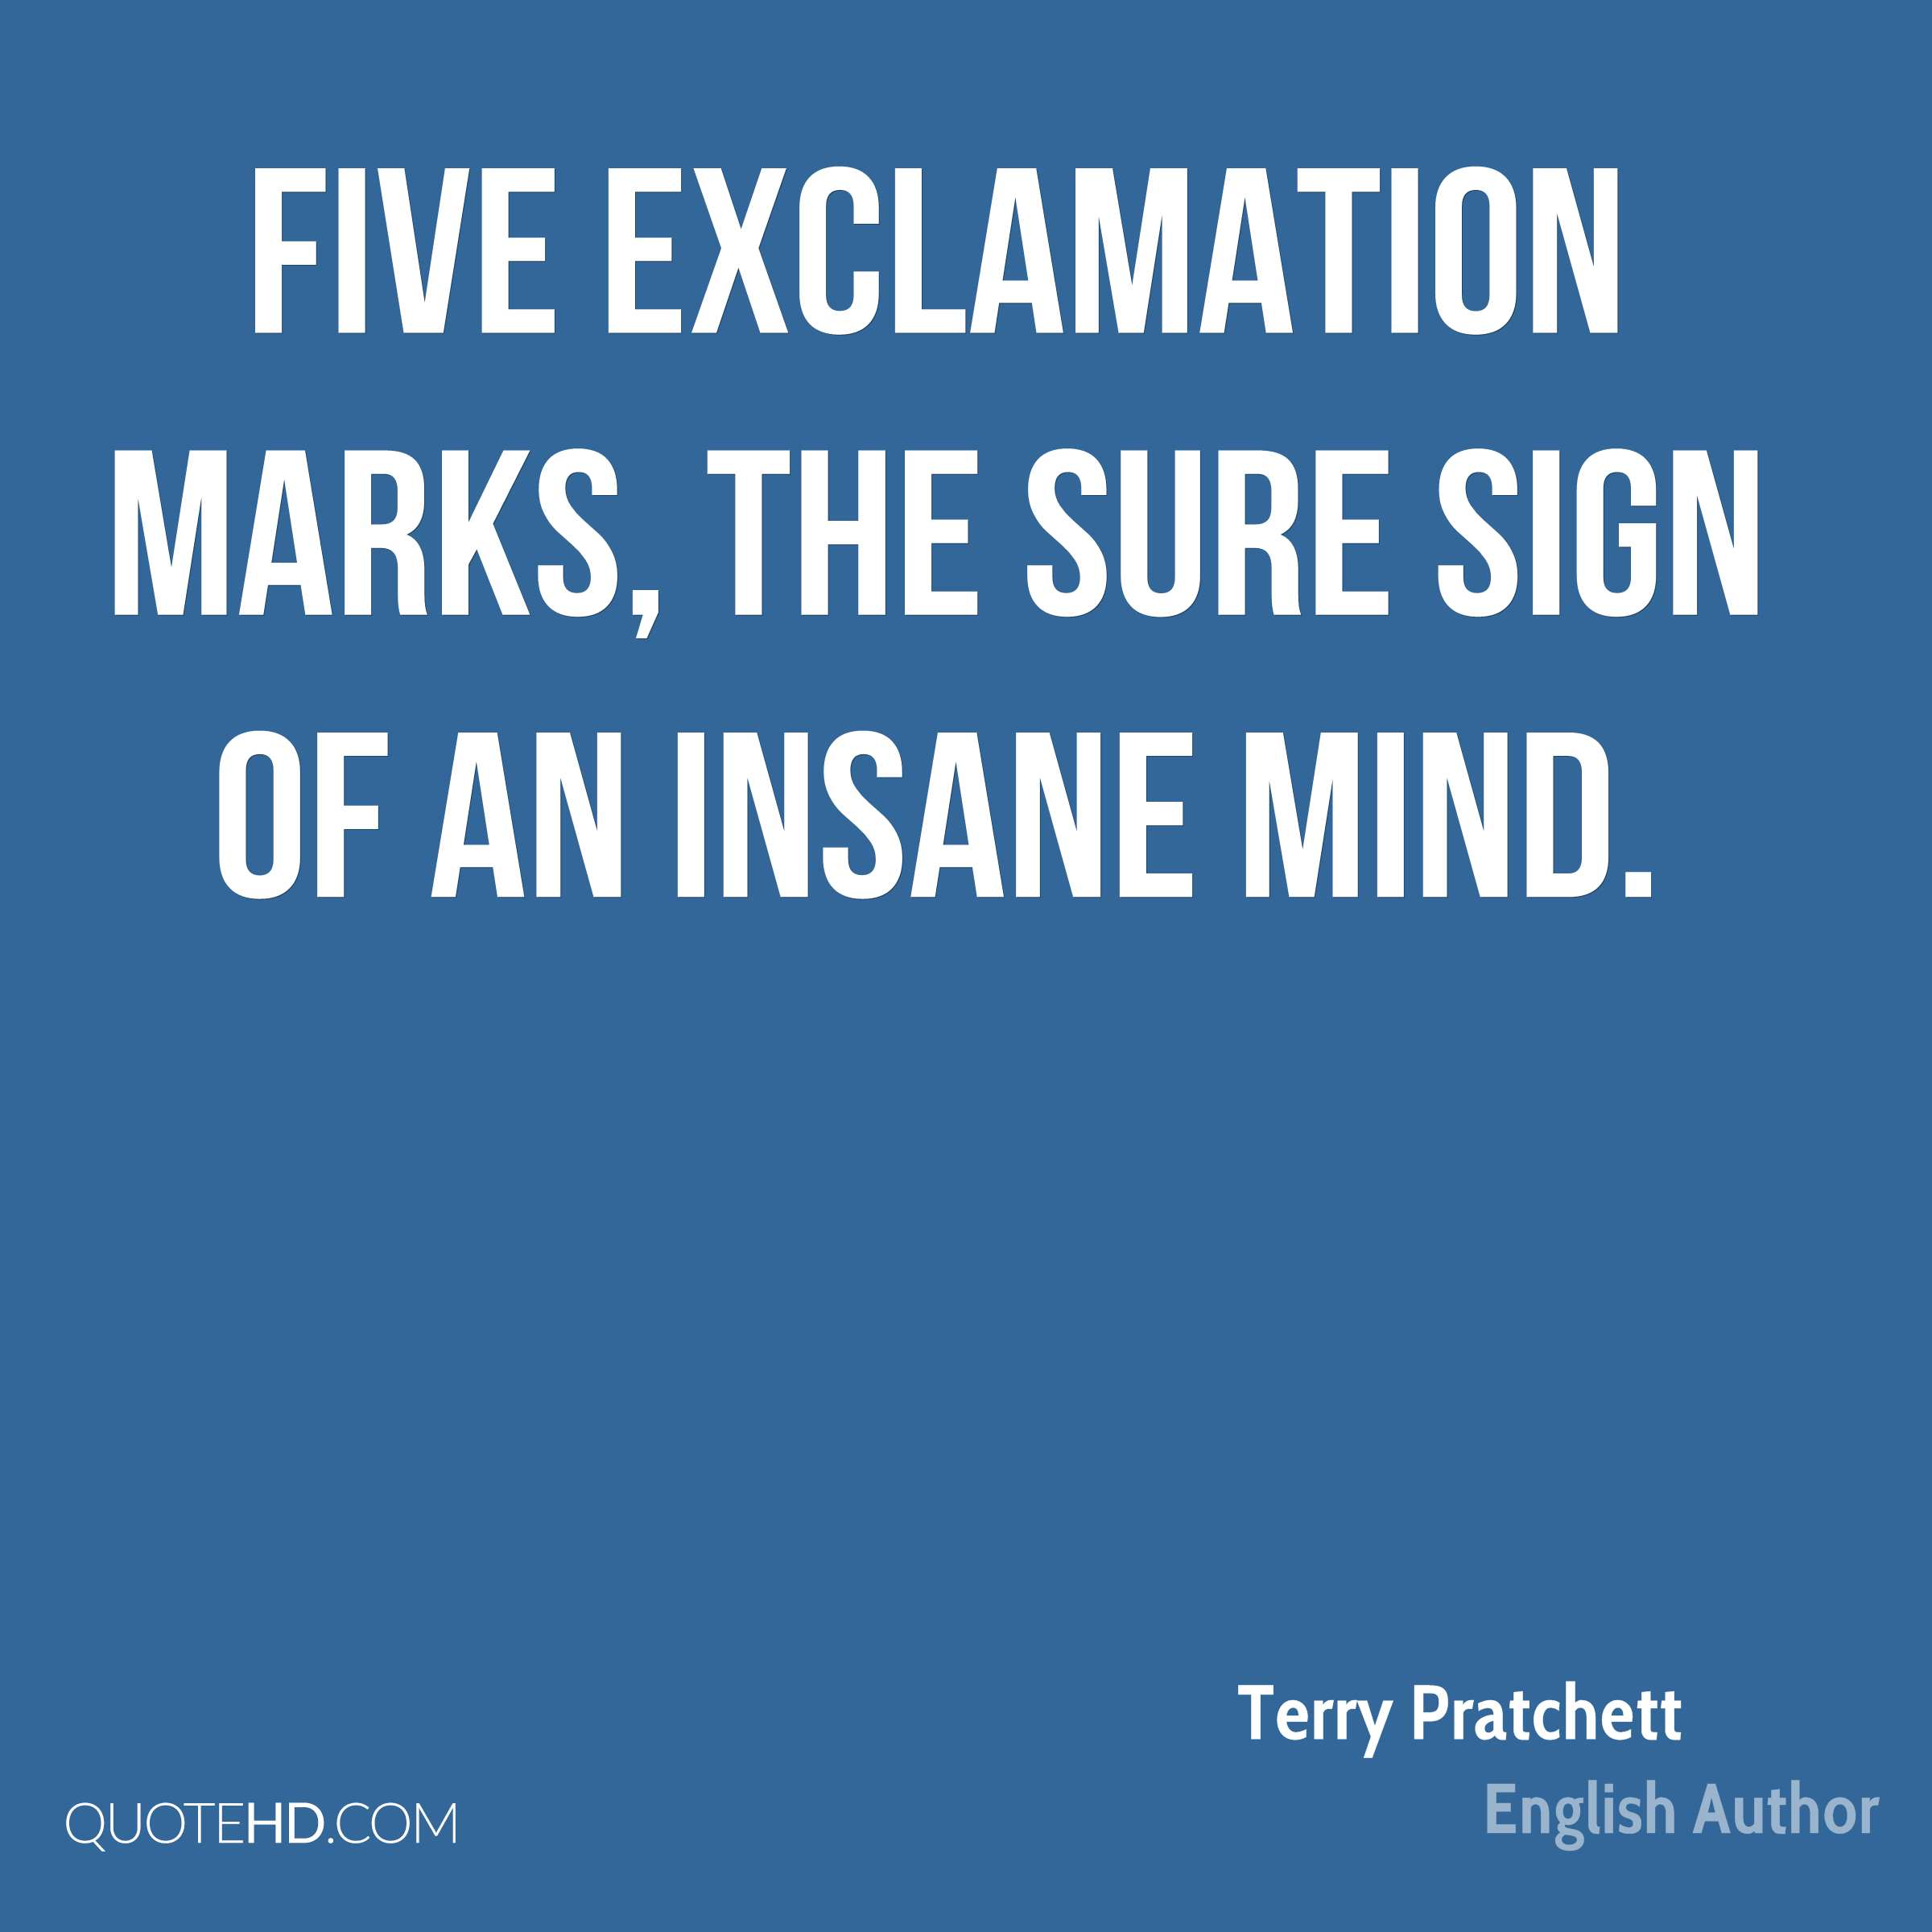 Five exclamation marks, the sure sign of an insane mind.